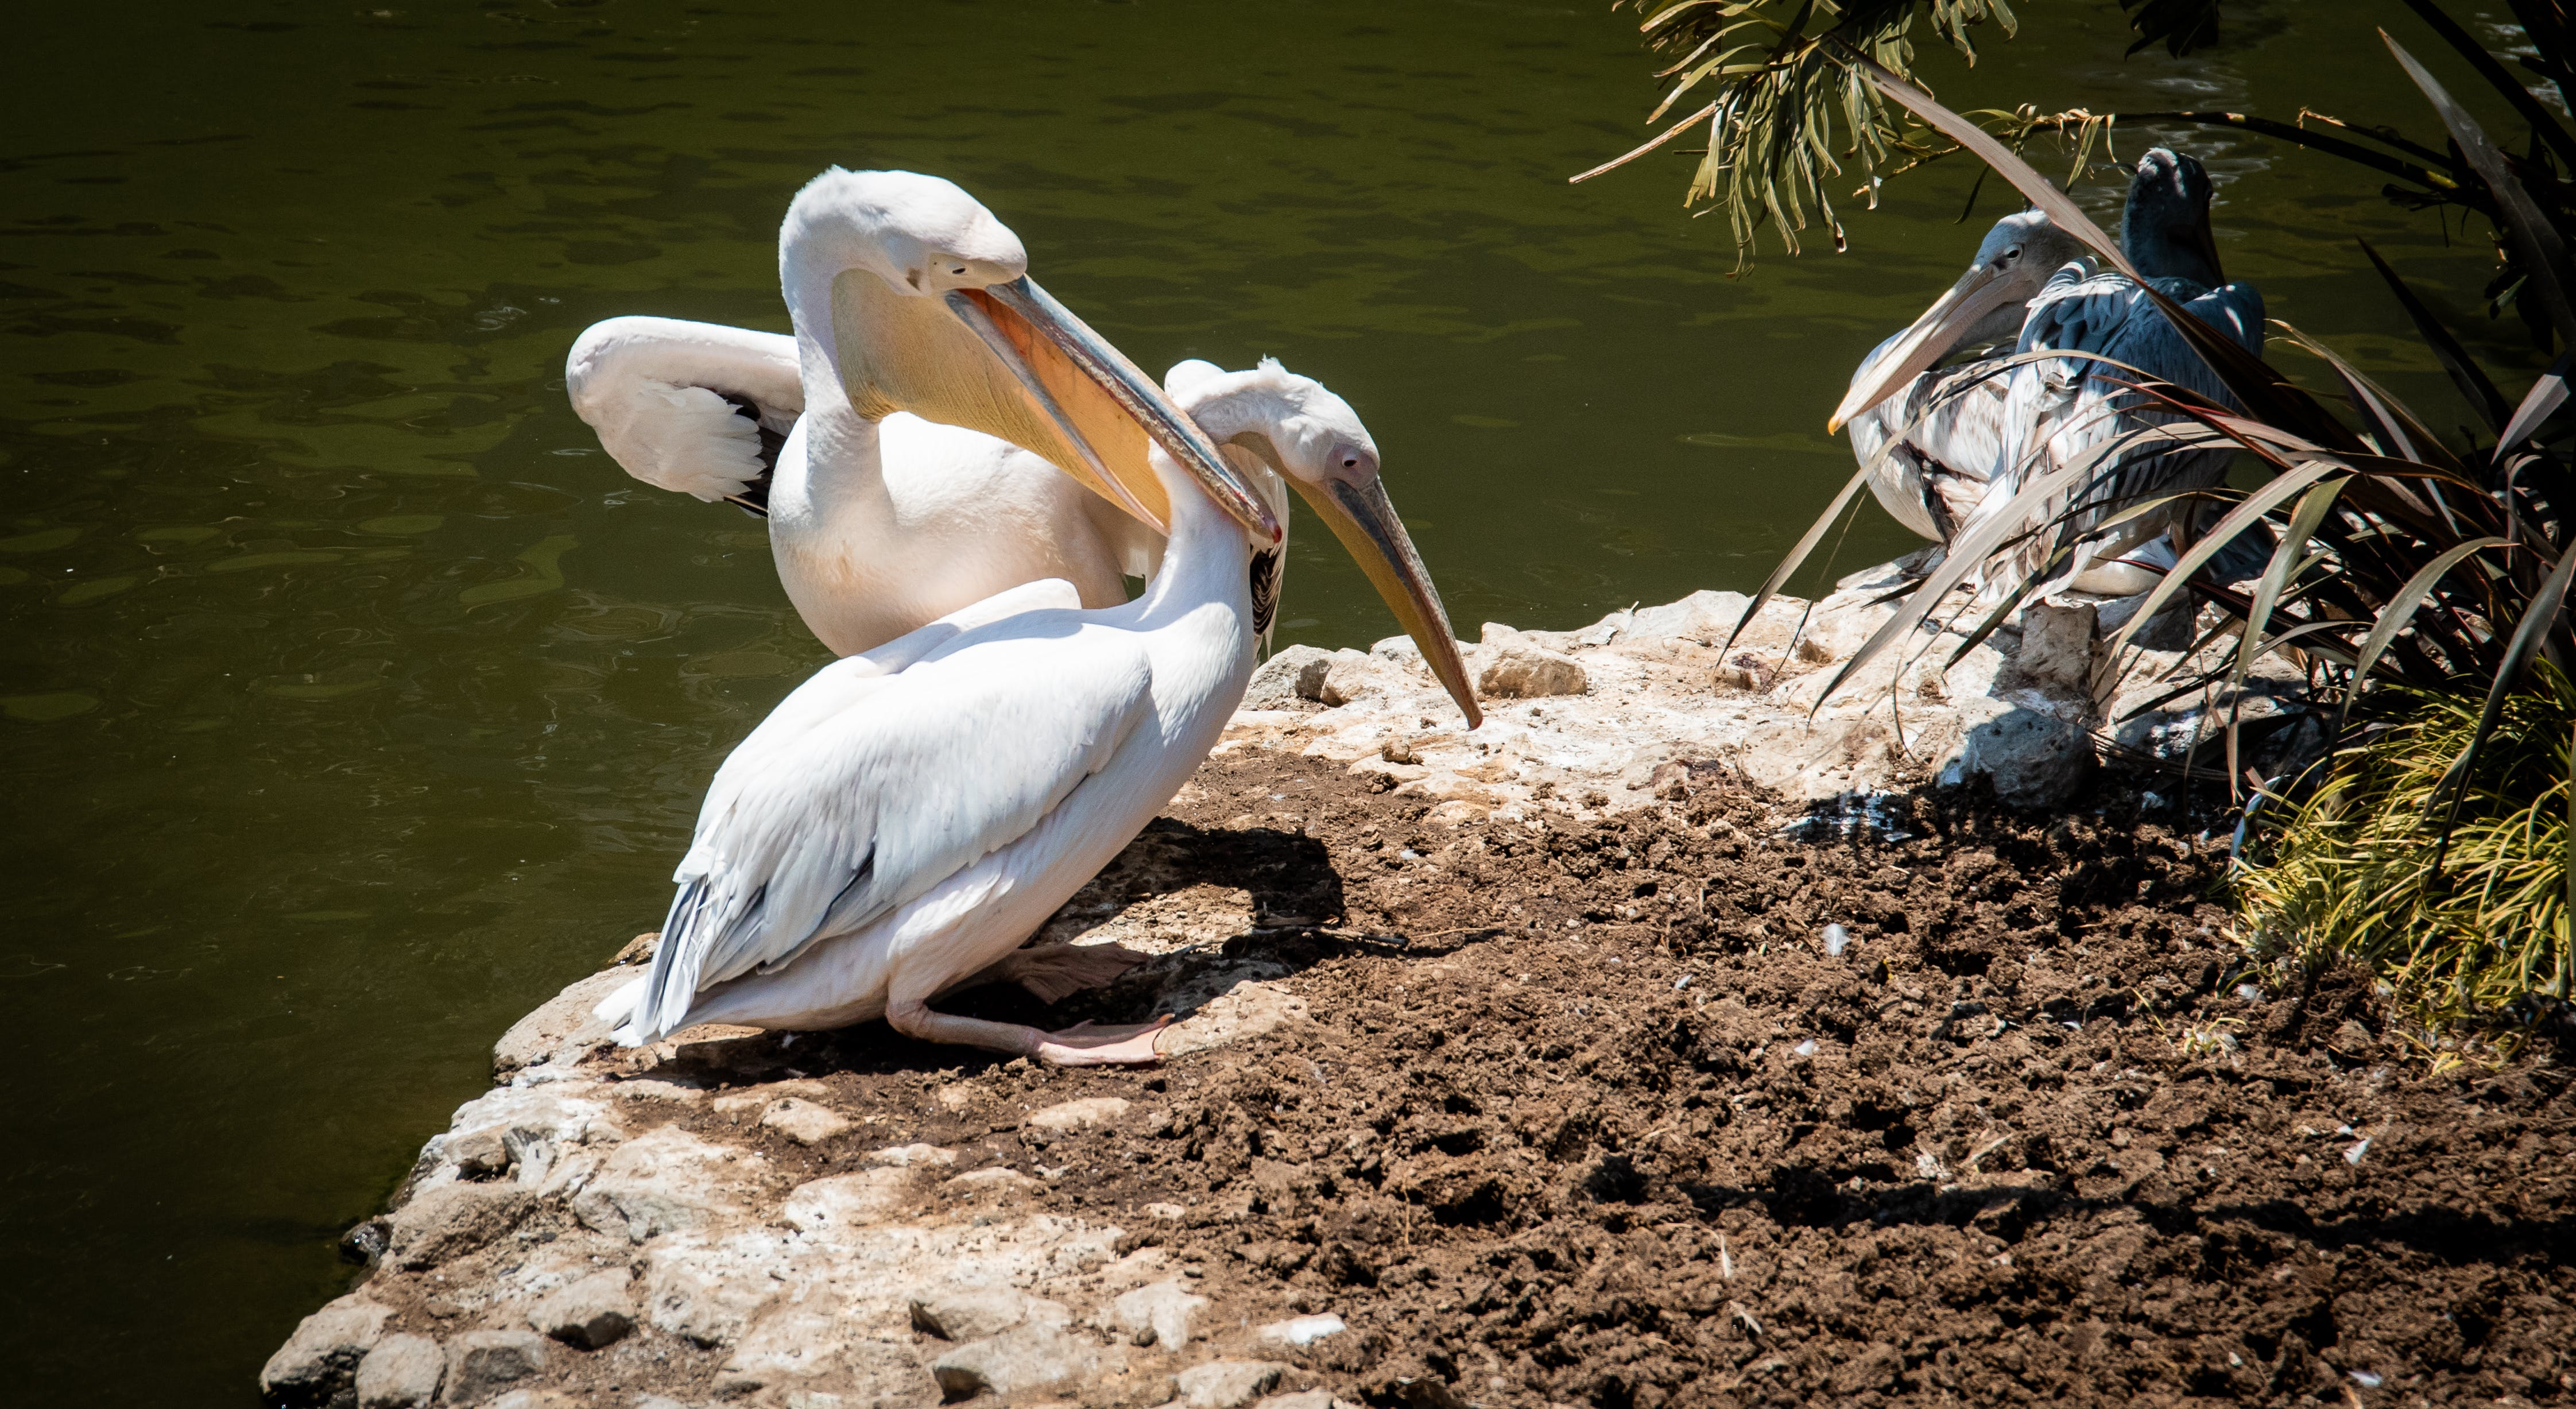 Two Pelican Perched on Soil